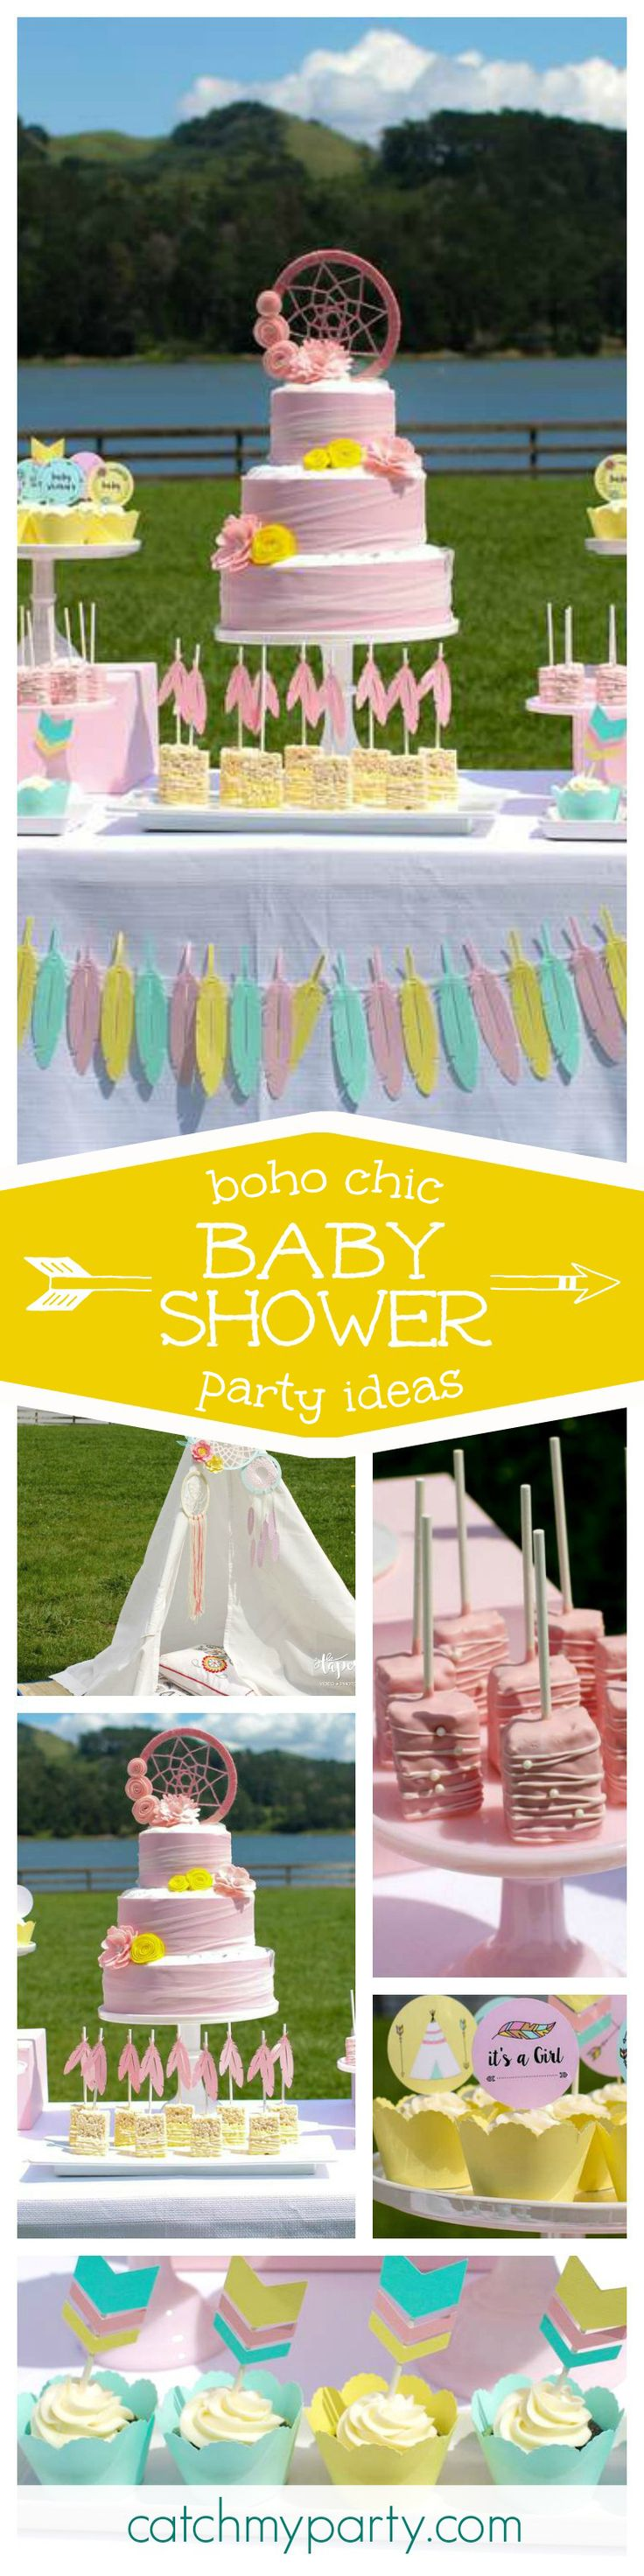 Check out this fantastic Boho chic pink Baby shower! The cake is stunning and the desserts so pretty! See more party ideas and share yours at CatachMyParty.com